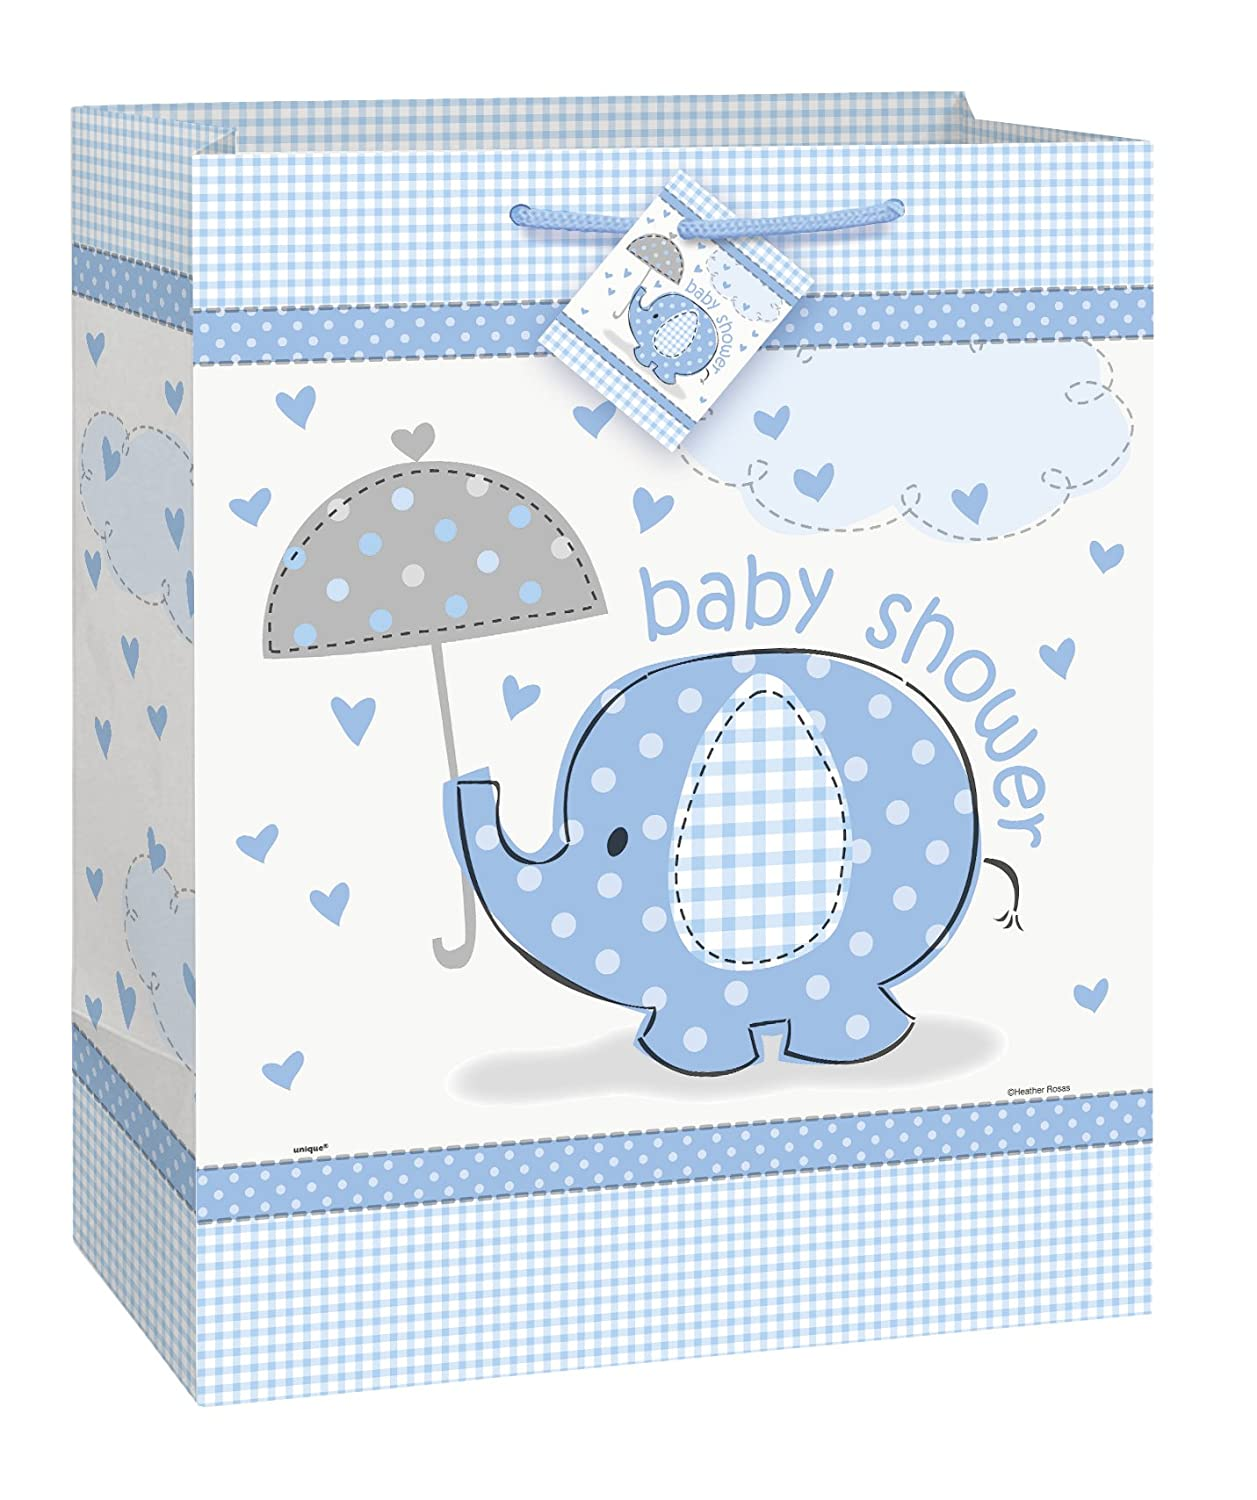 Best Newborn Baby Boy Gifts : Baby shower boy gifts homemade